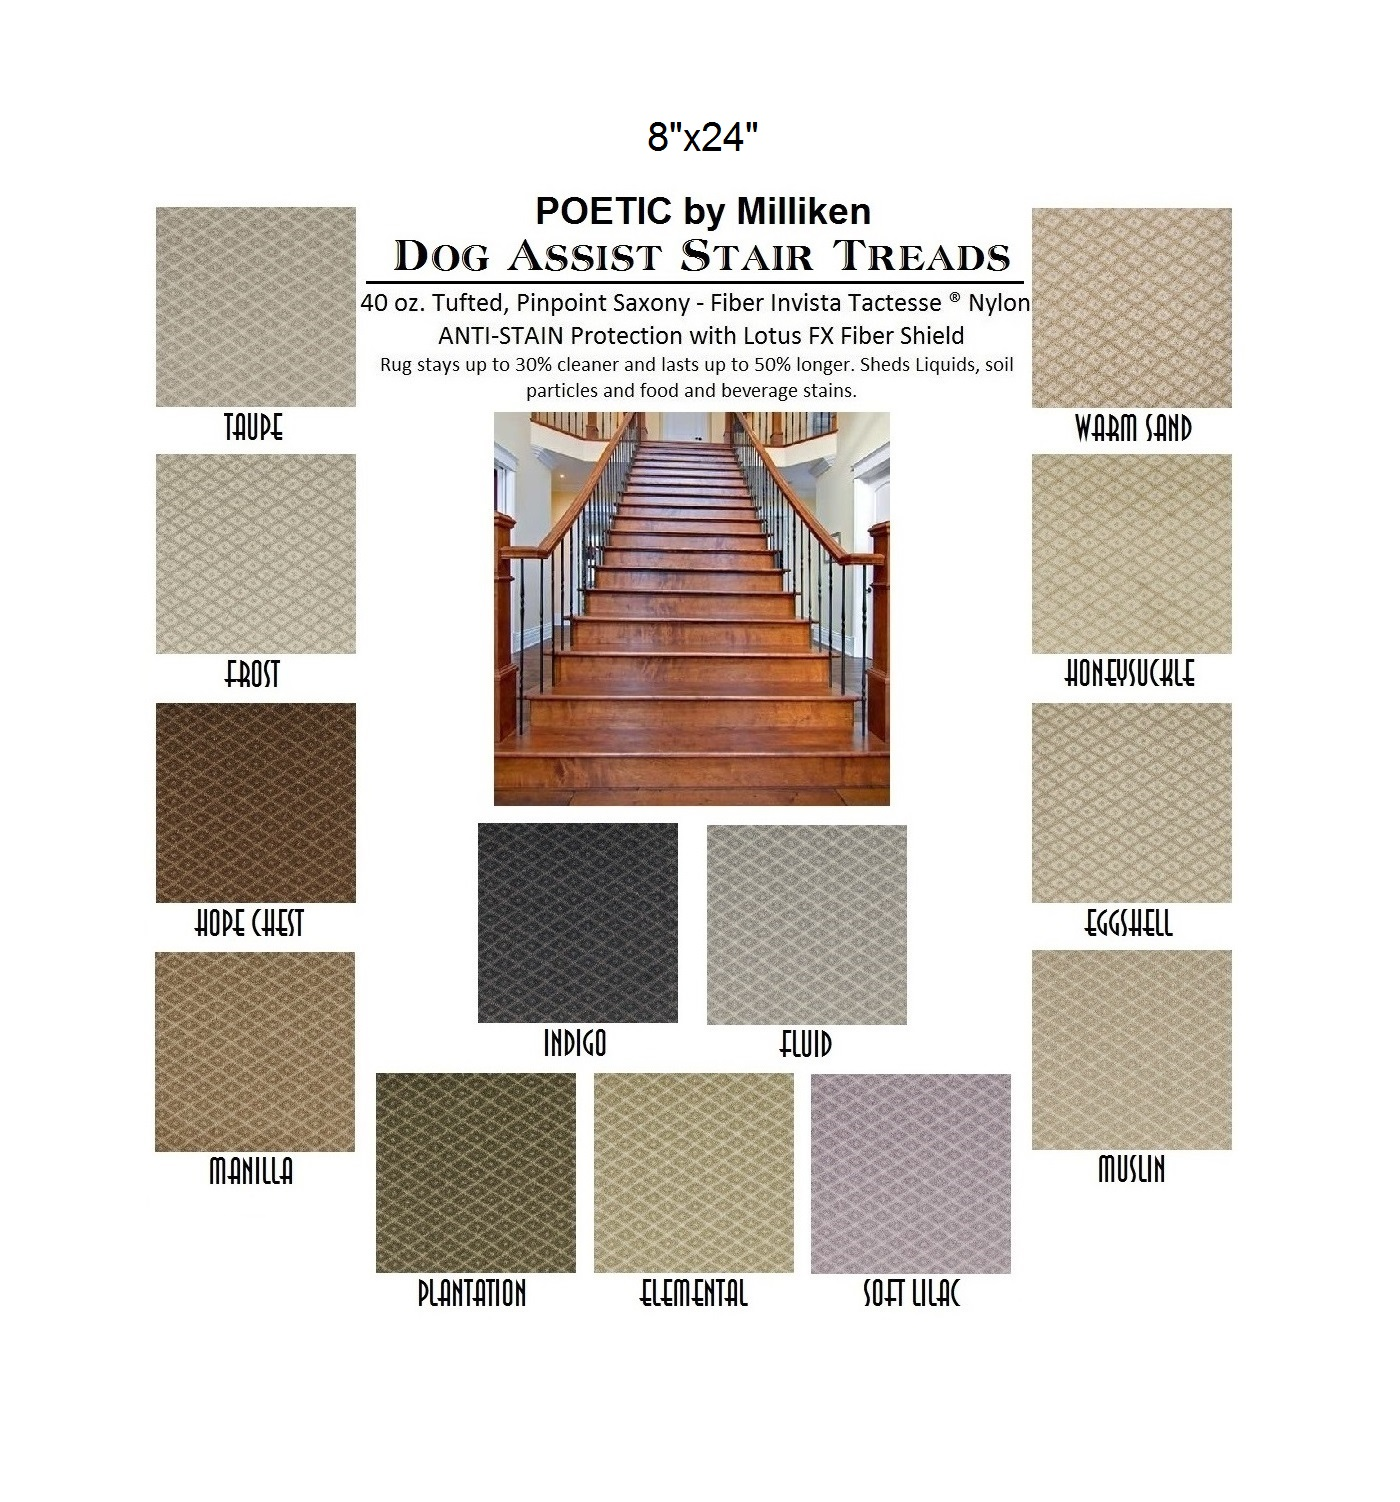 Poetic DOG ASSIST Carpet Stair Treads